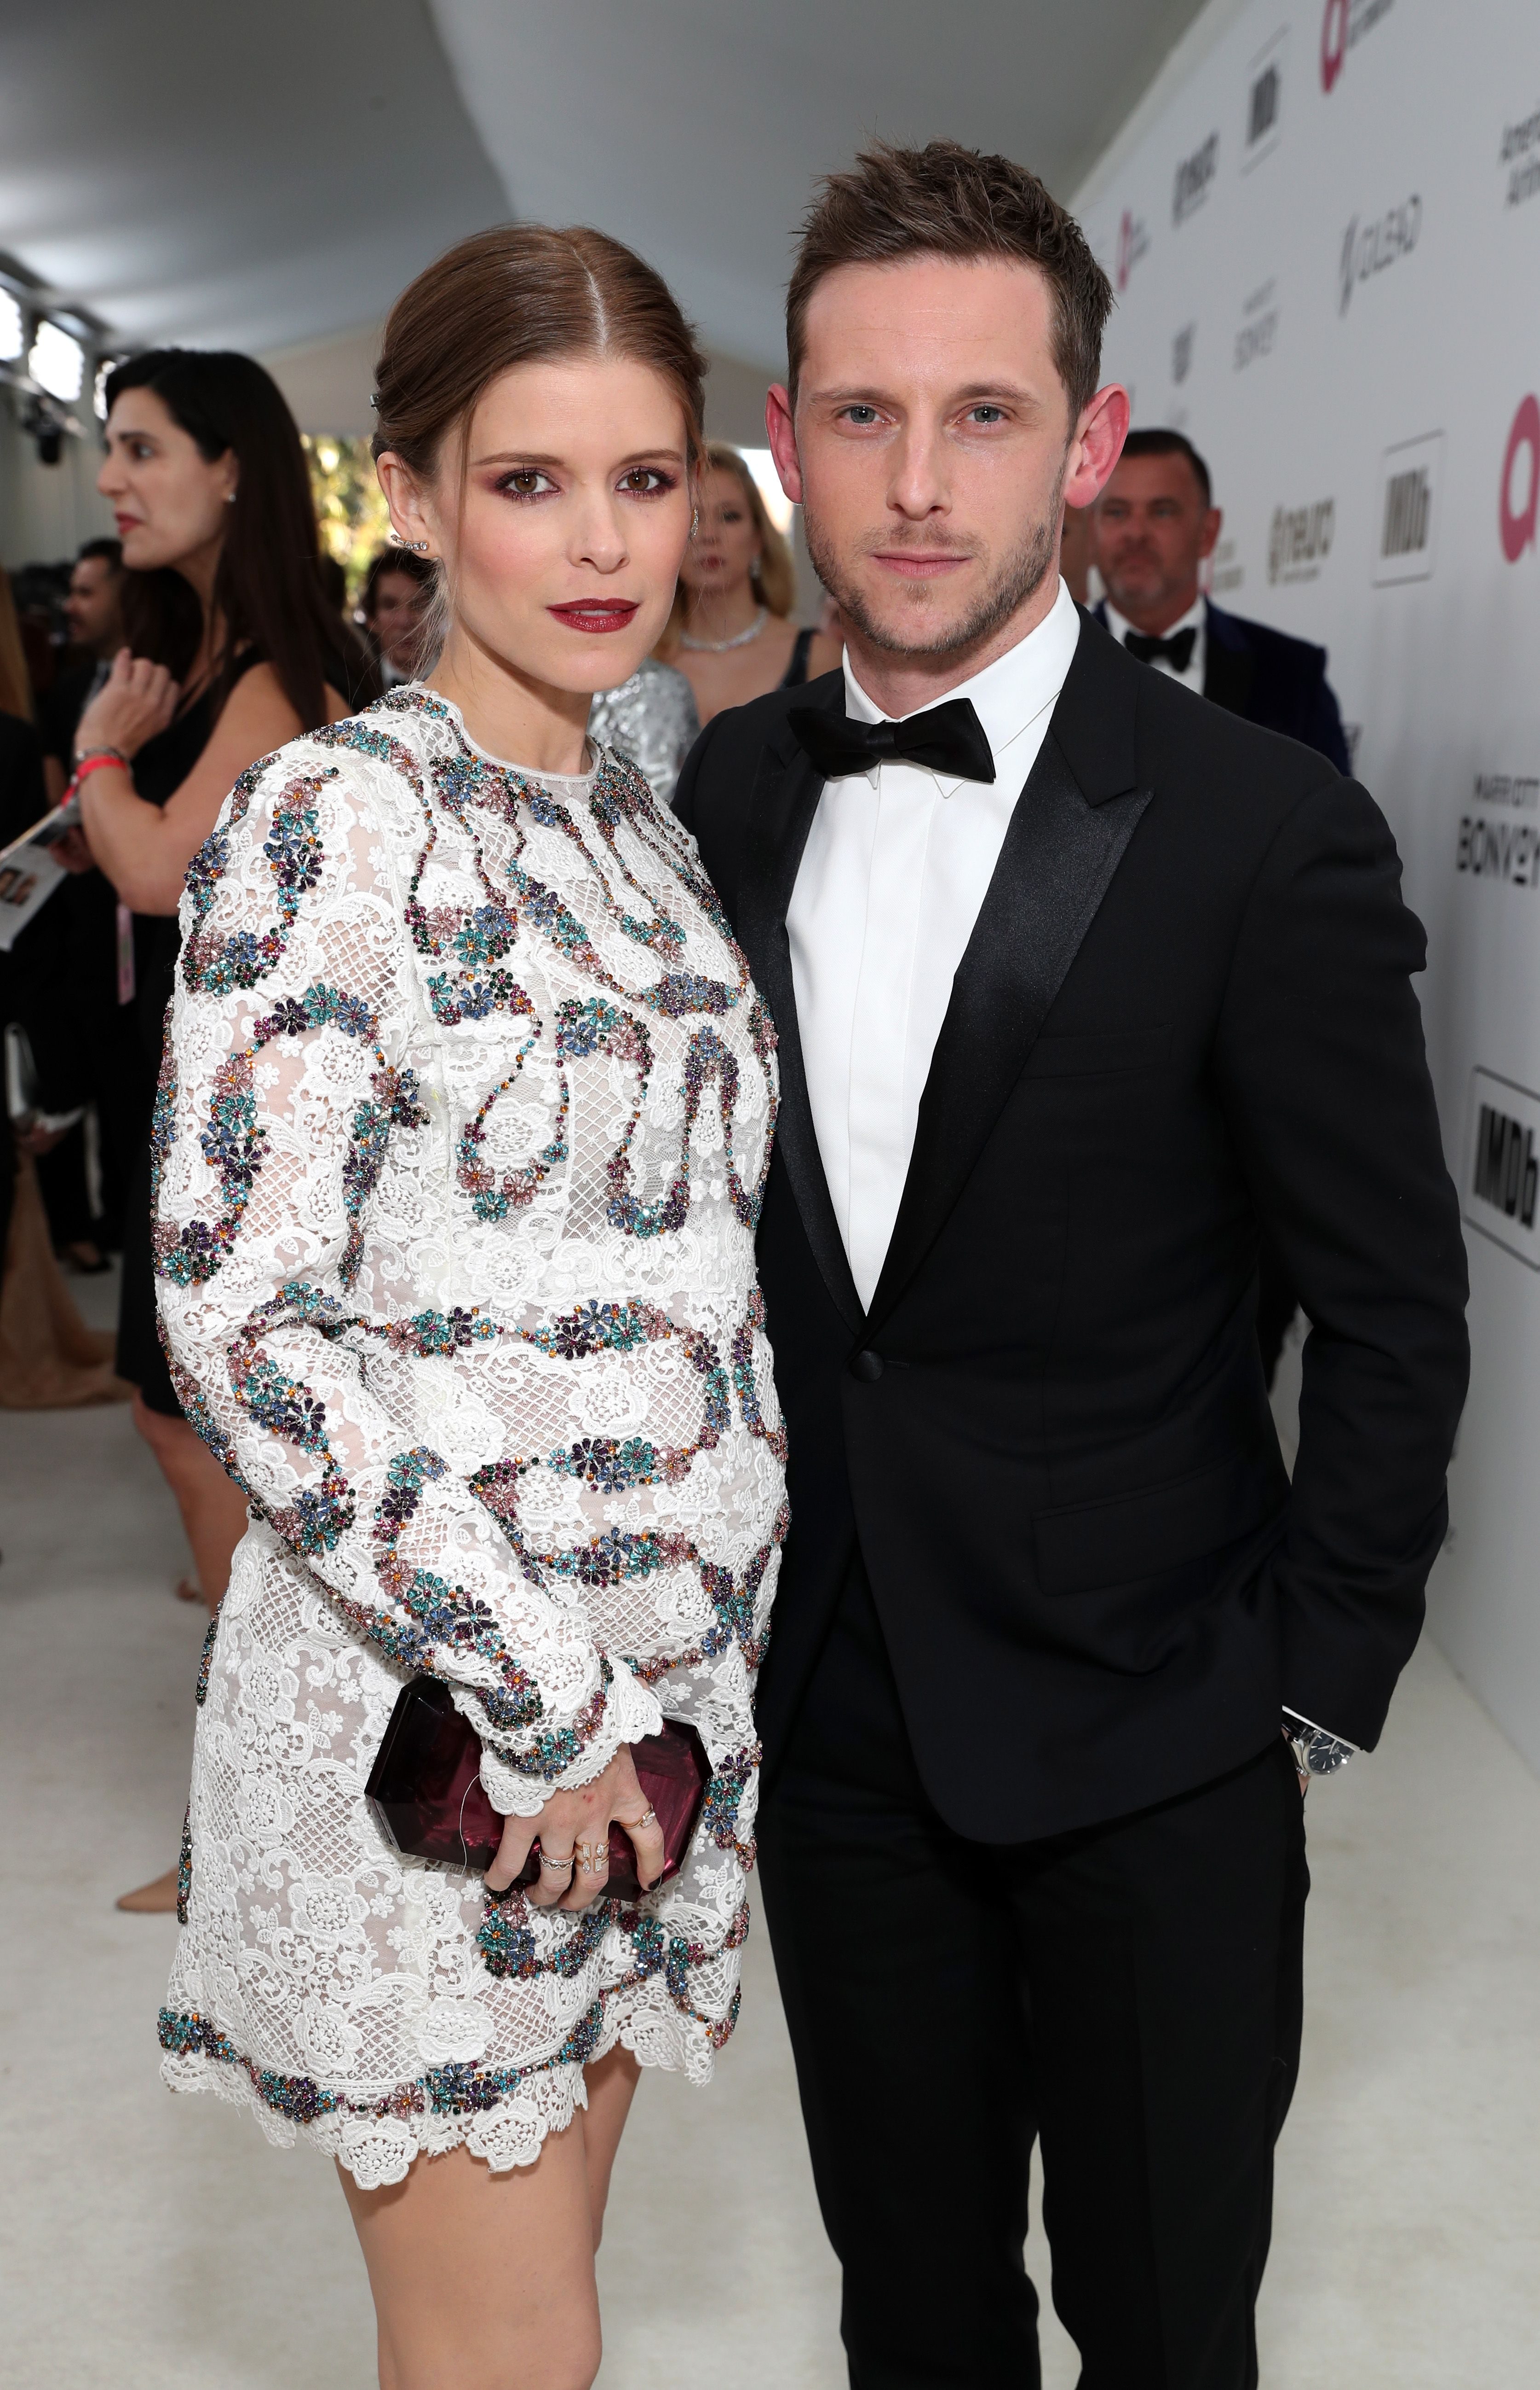 Kate Mara and Jamie Bell at the 27th annual Elton John AIDS Foundation Academy Awards Viewing Party sin February 2019 in West Hollywood, California | Source: Getty Images